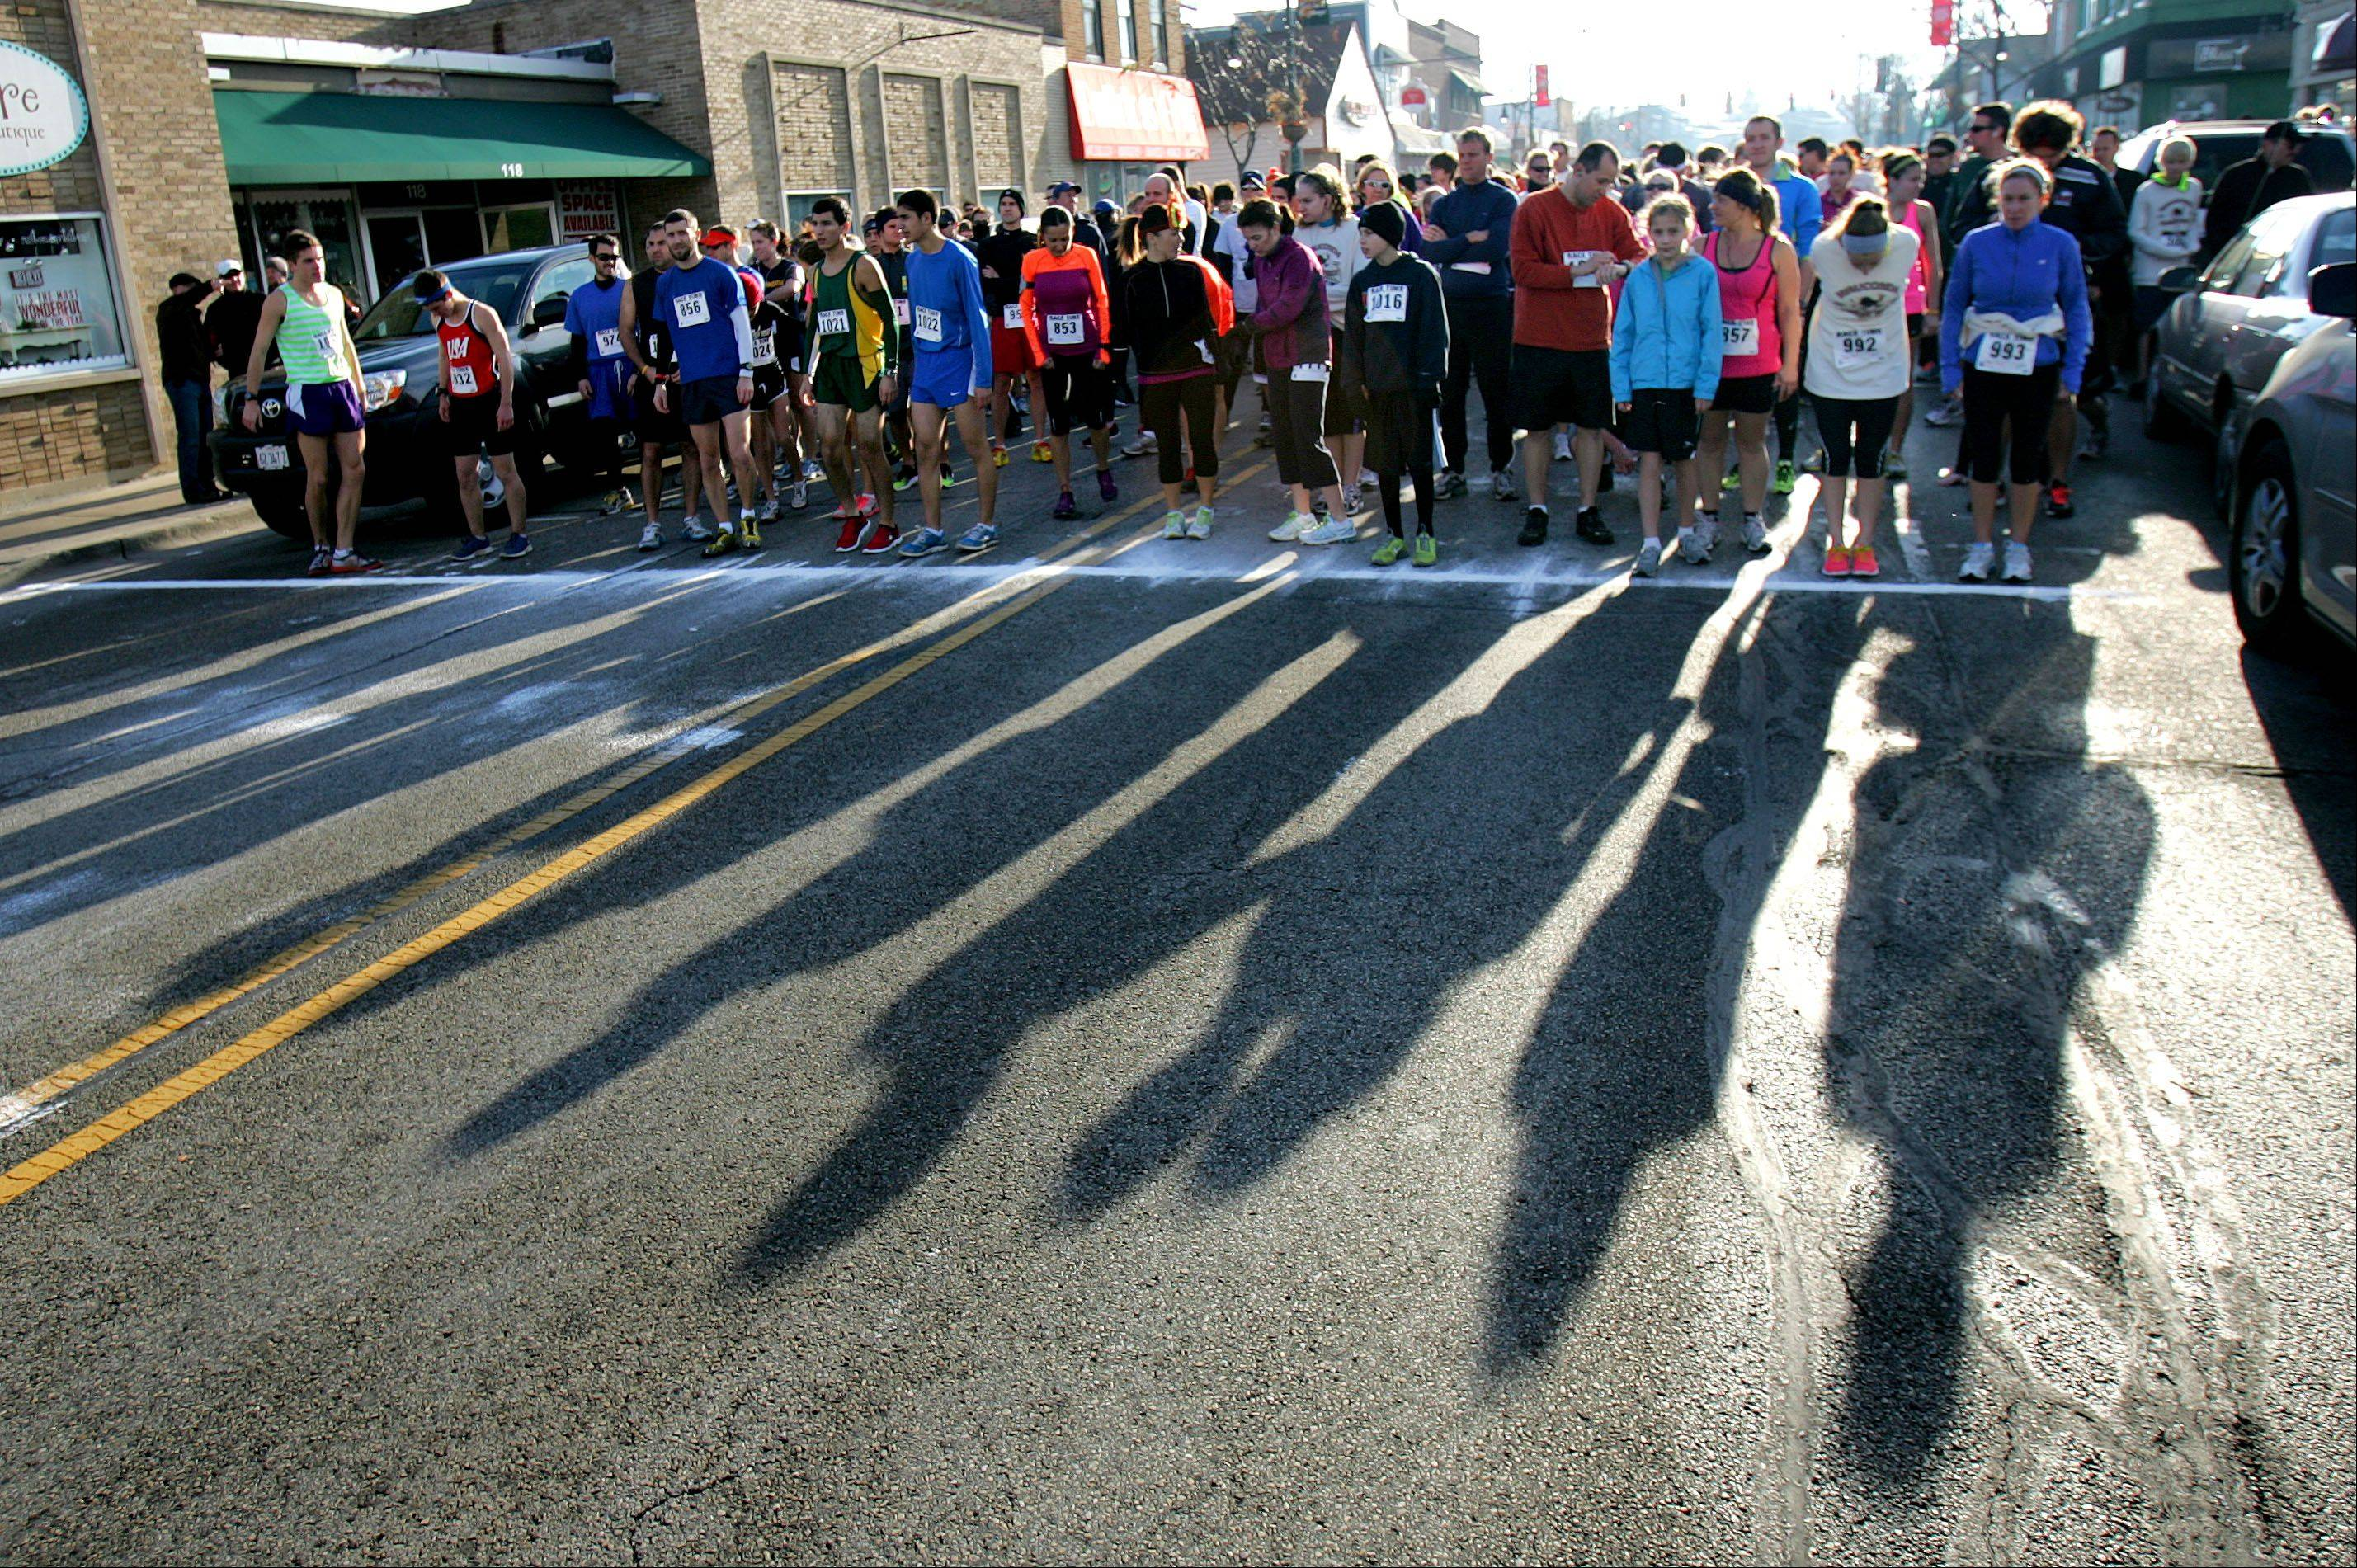 Wauconda to decide if it will sponsor Turkey Trot race